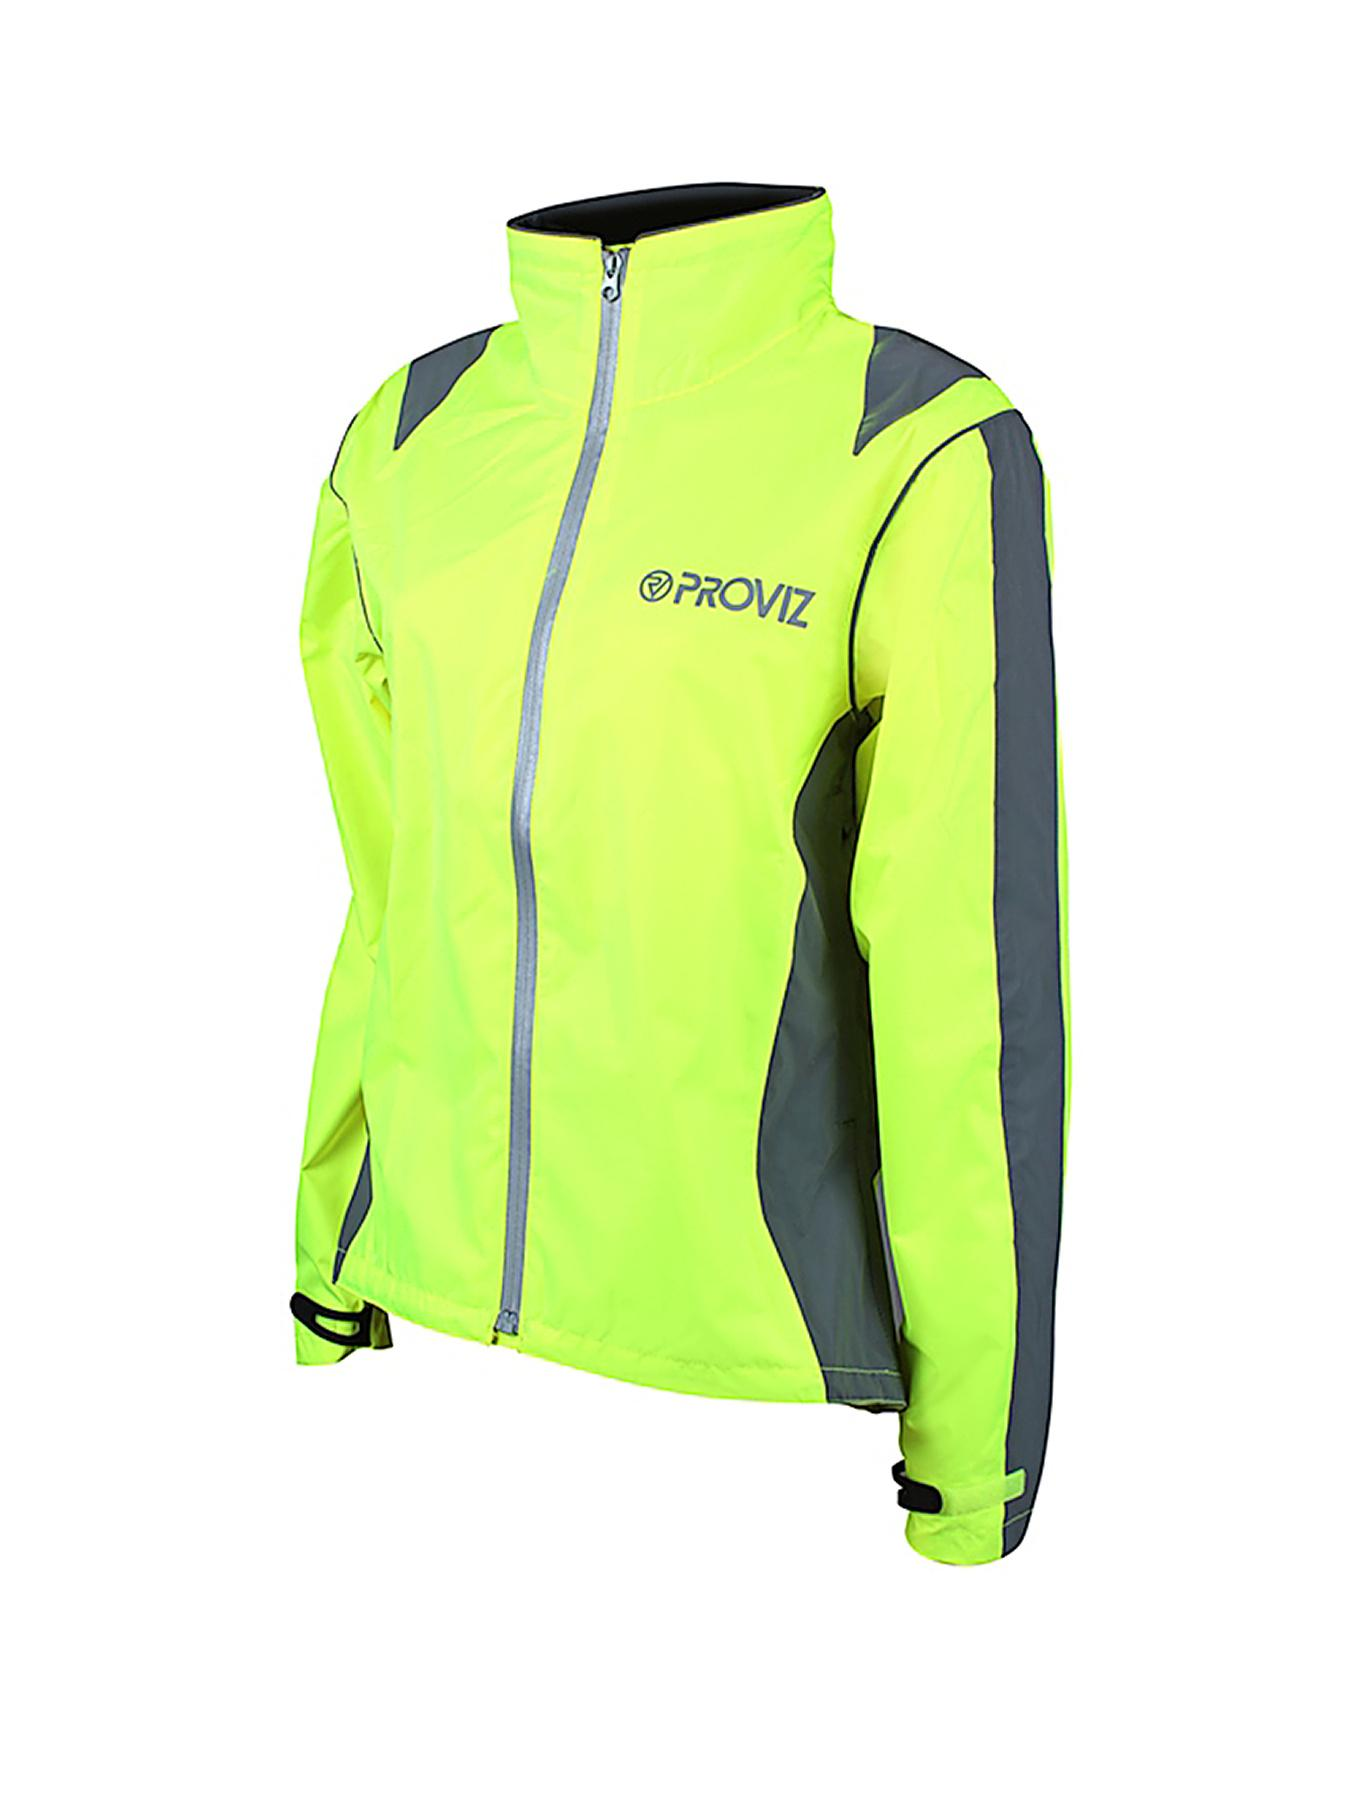 PROVIZ Ladies Waterproof Cycling Jacket - Yellow - Yellow, Yellow